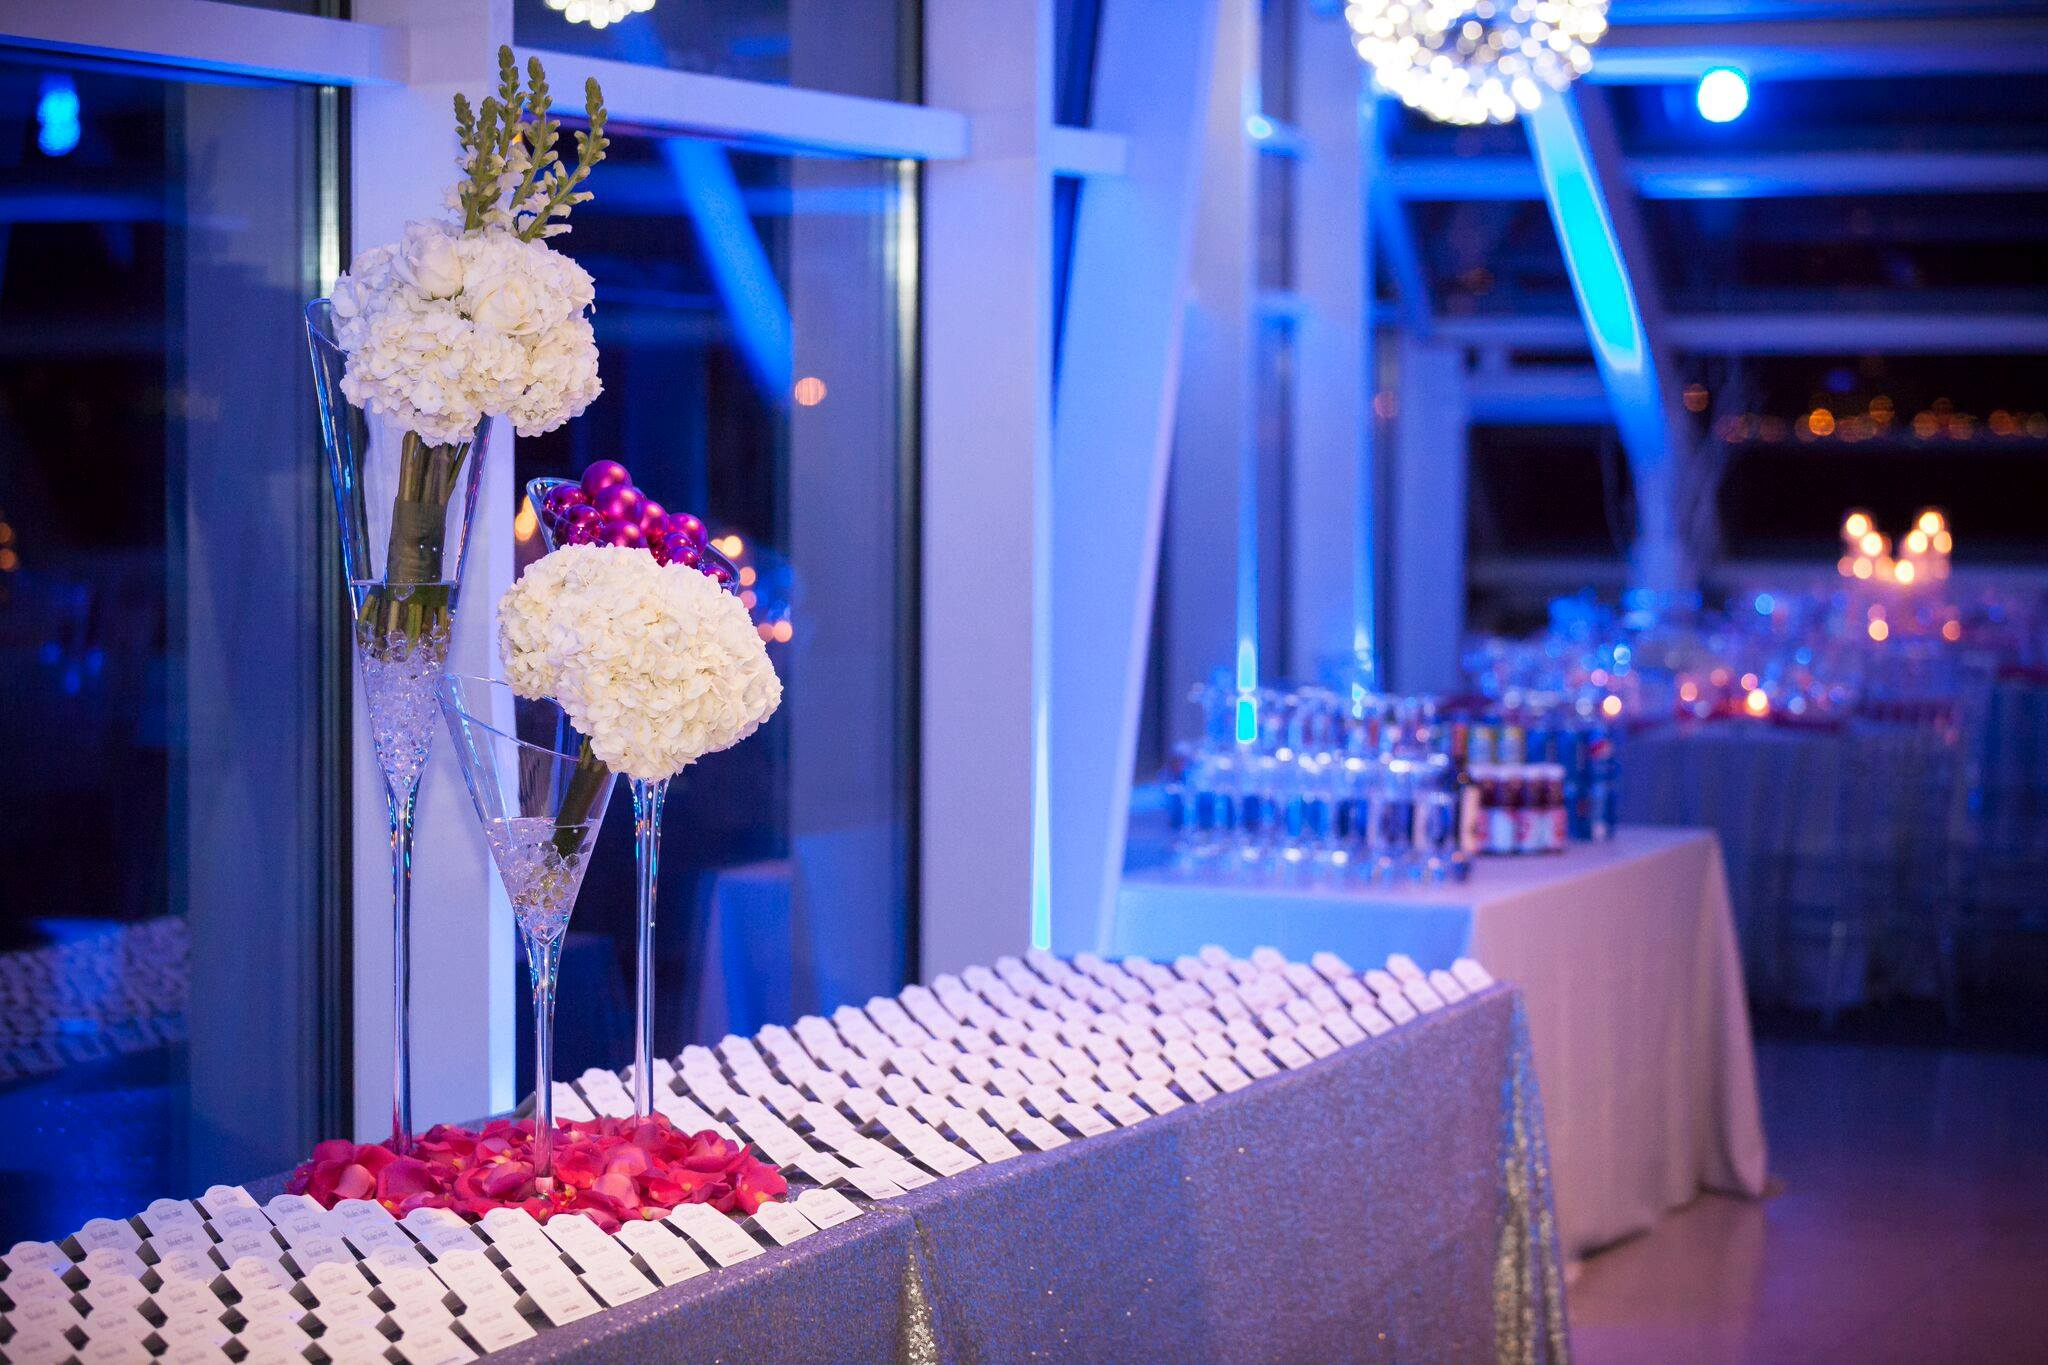 Holiday party. Table with name cards and a flower display.